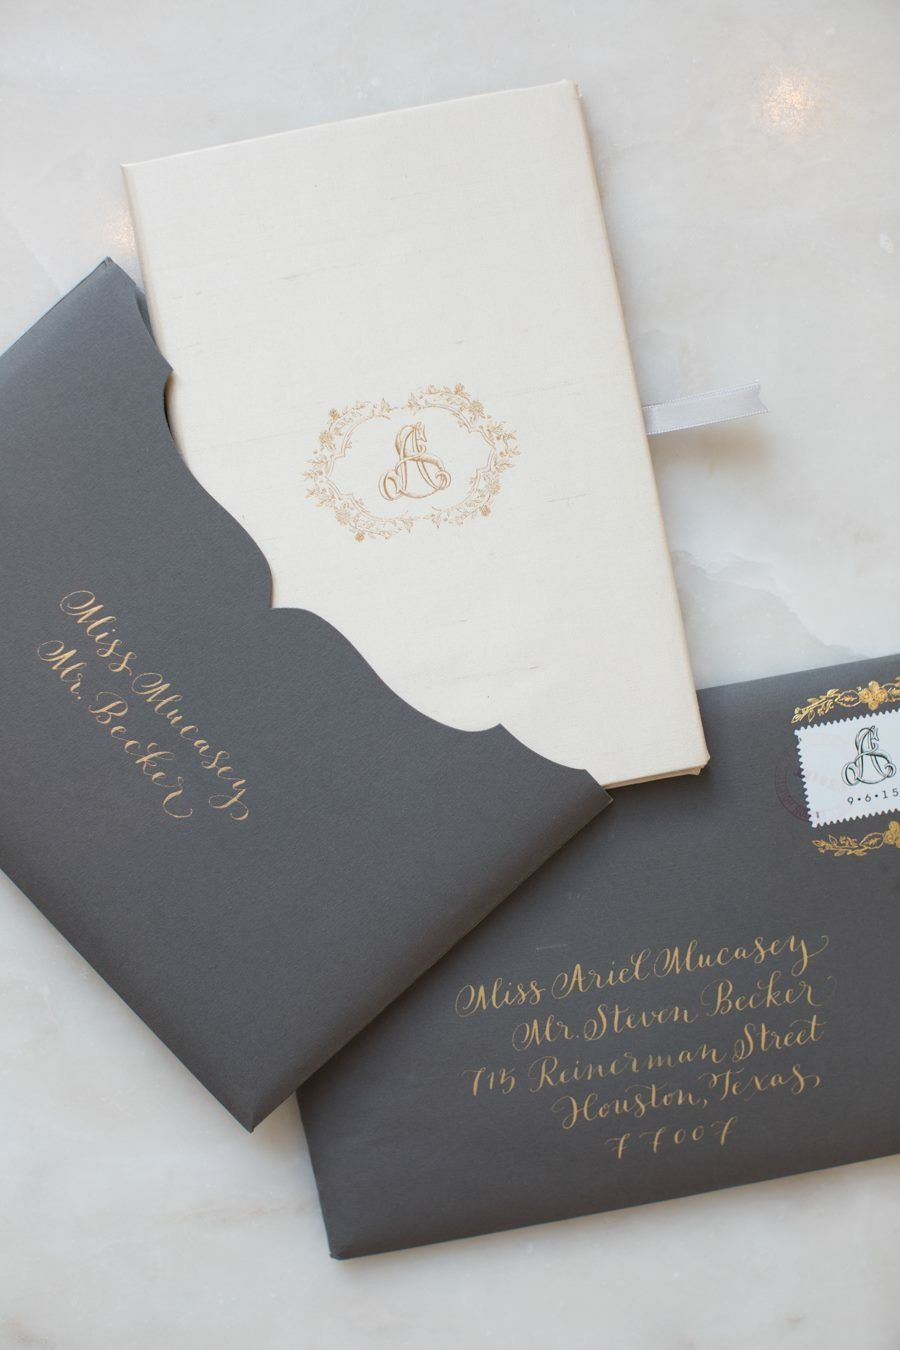 82 Ariel Stiven Wedding Invitation With Images Marriage